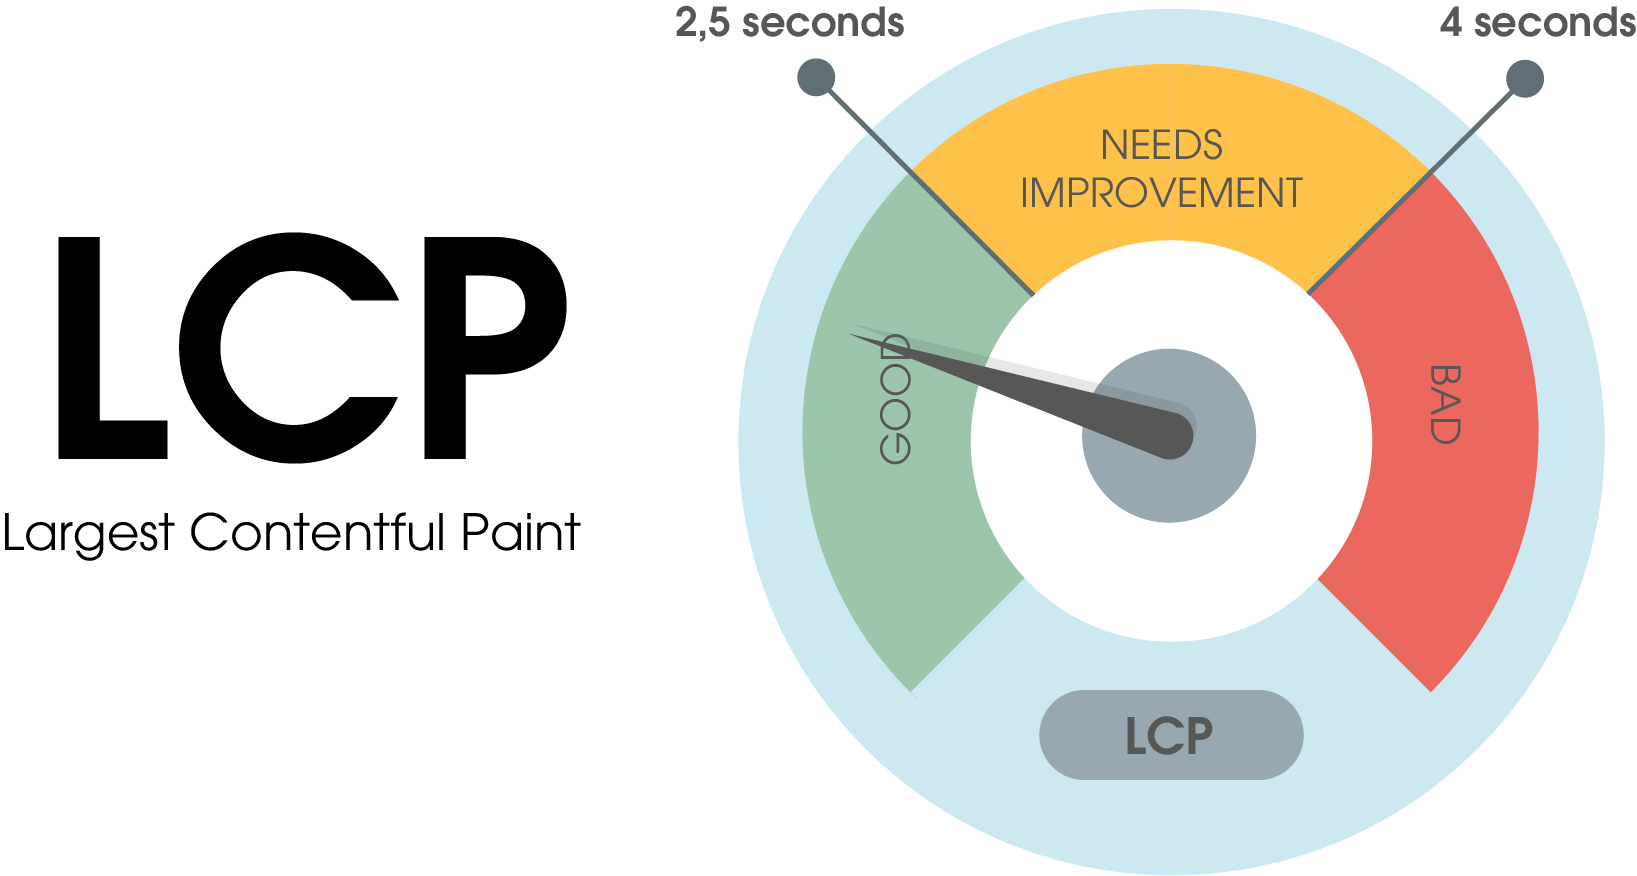 The LCP (largest contentful paint) score is divided into three ranges: 1. good: 0 to 2.5 seconds loading time 2. in need of optimization: 2.5 to 4 seconds loading time 3. bad: 4 seconds loading time and more